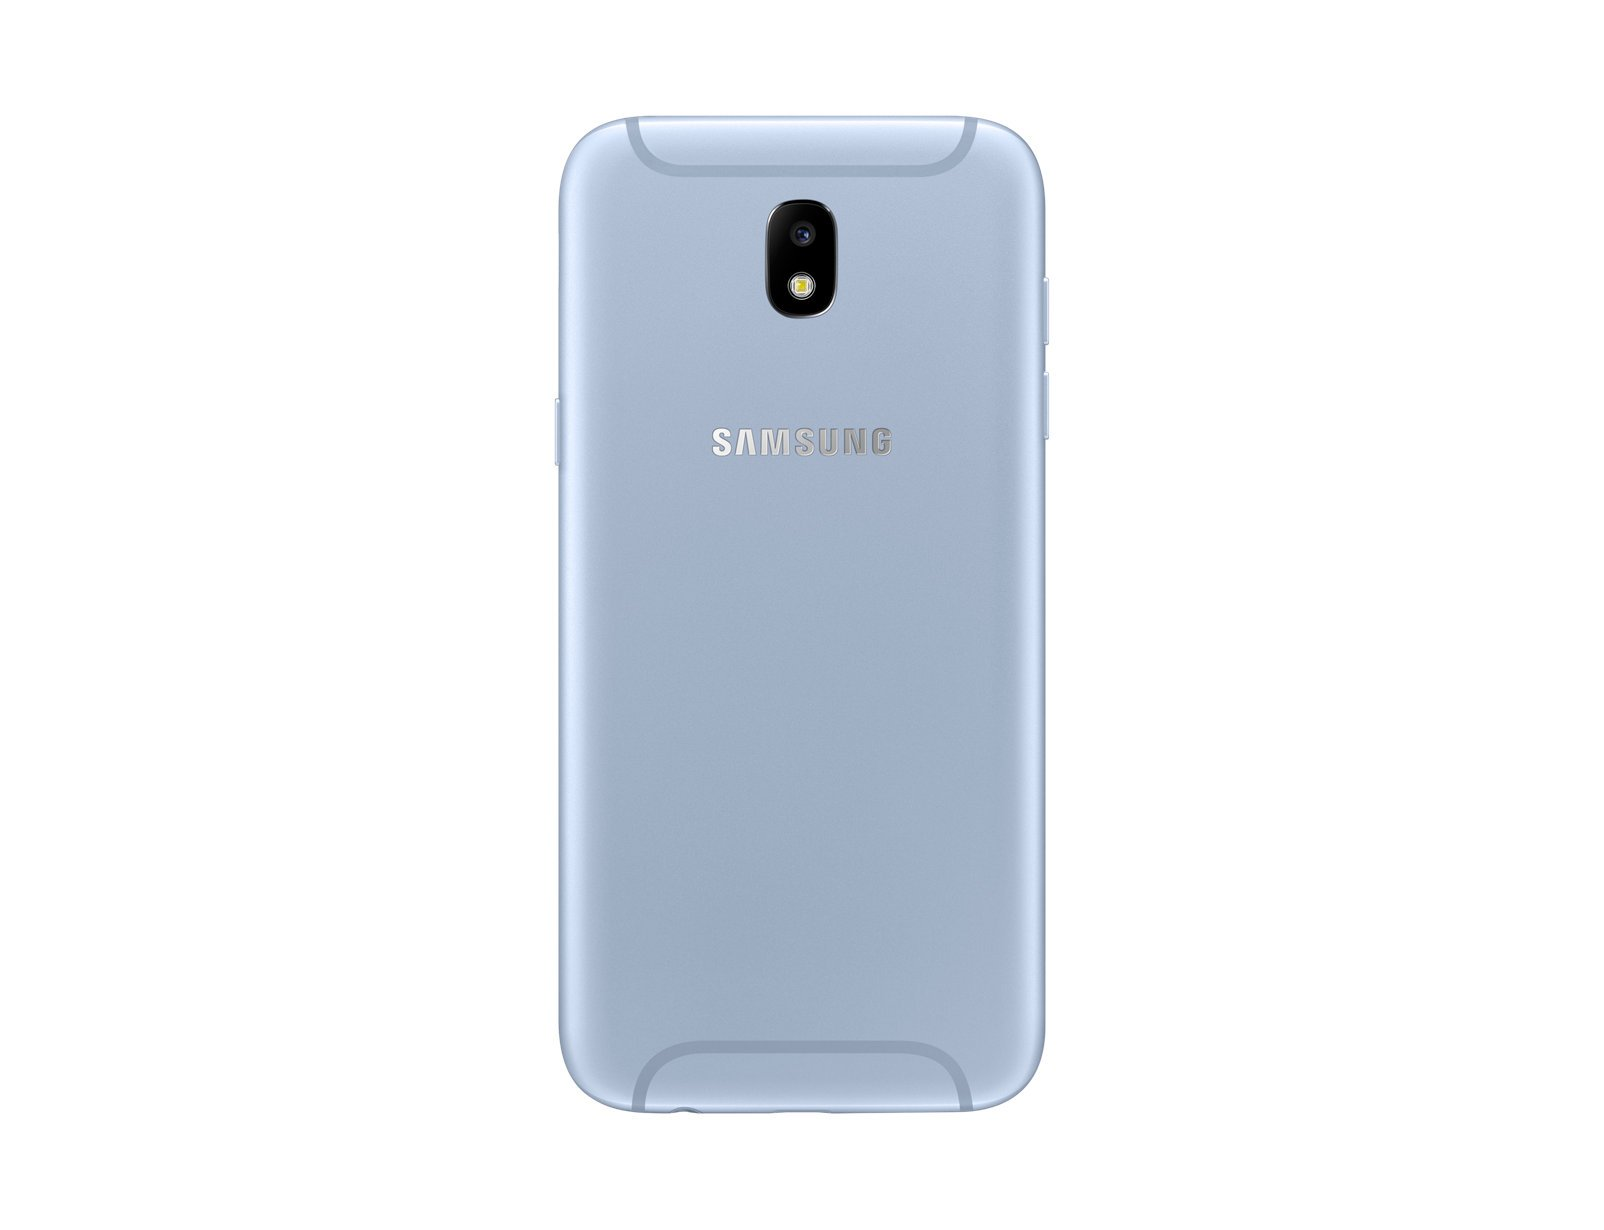 Samsung Galaxy J5  2017  Specs  Review  Release Date